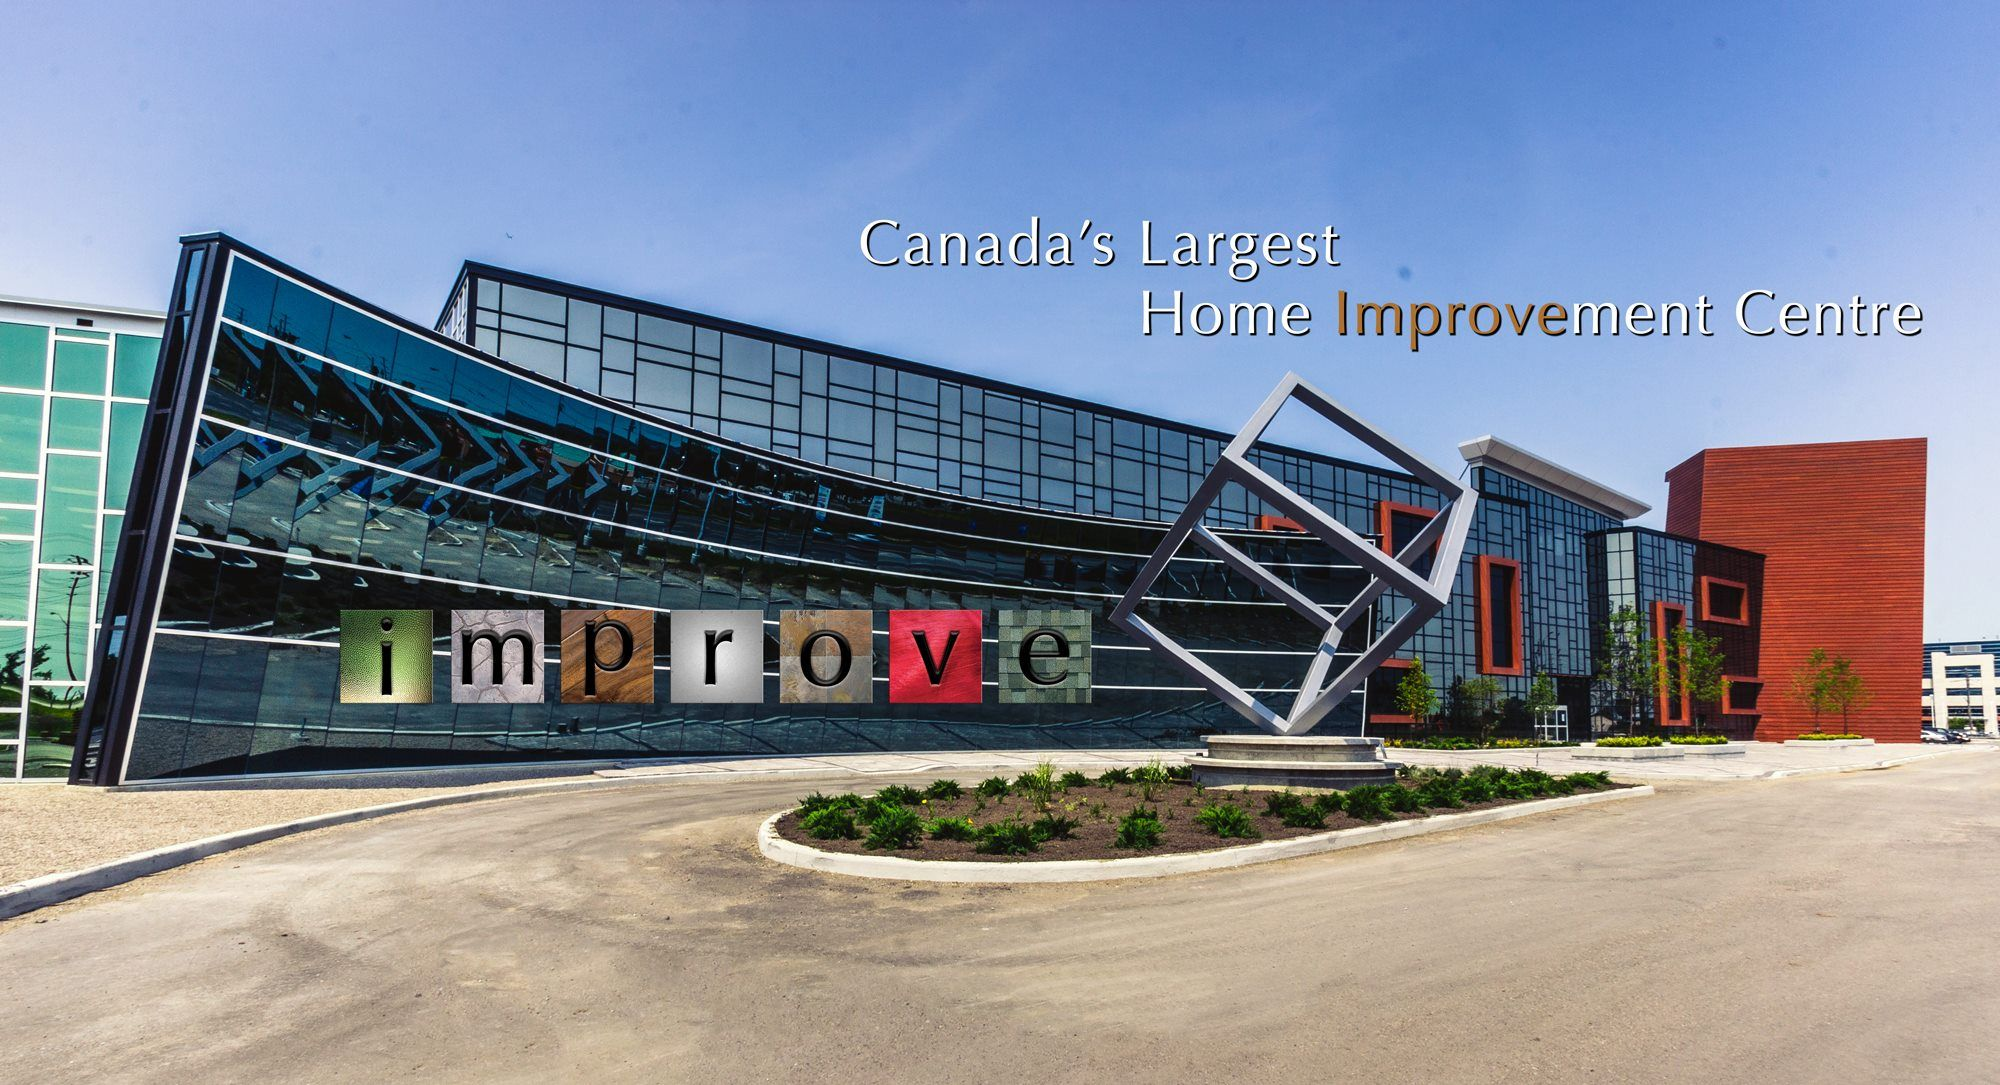 Improve Mall Coming 2015 400 Stores With Home Improvement